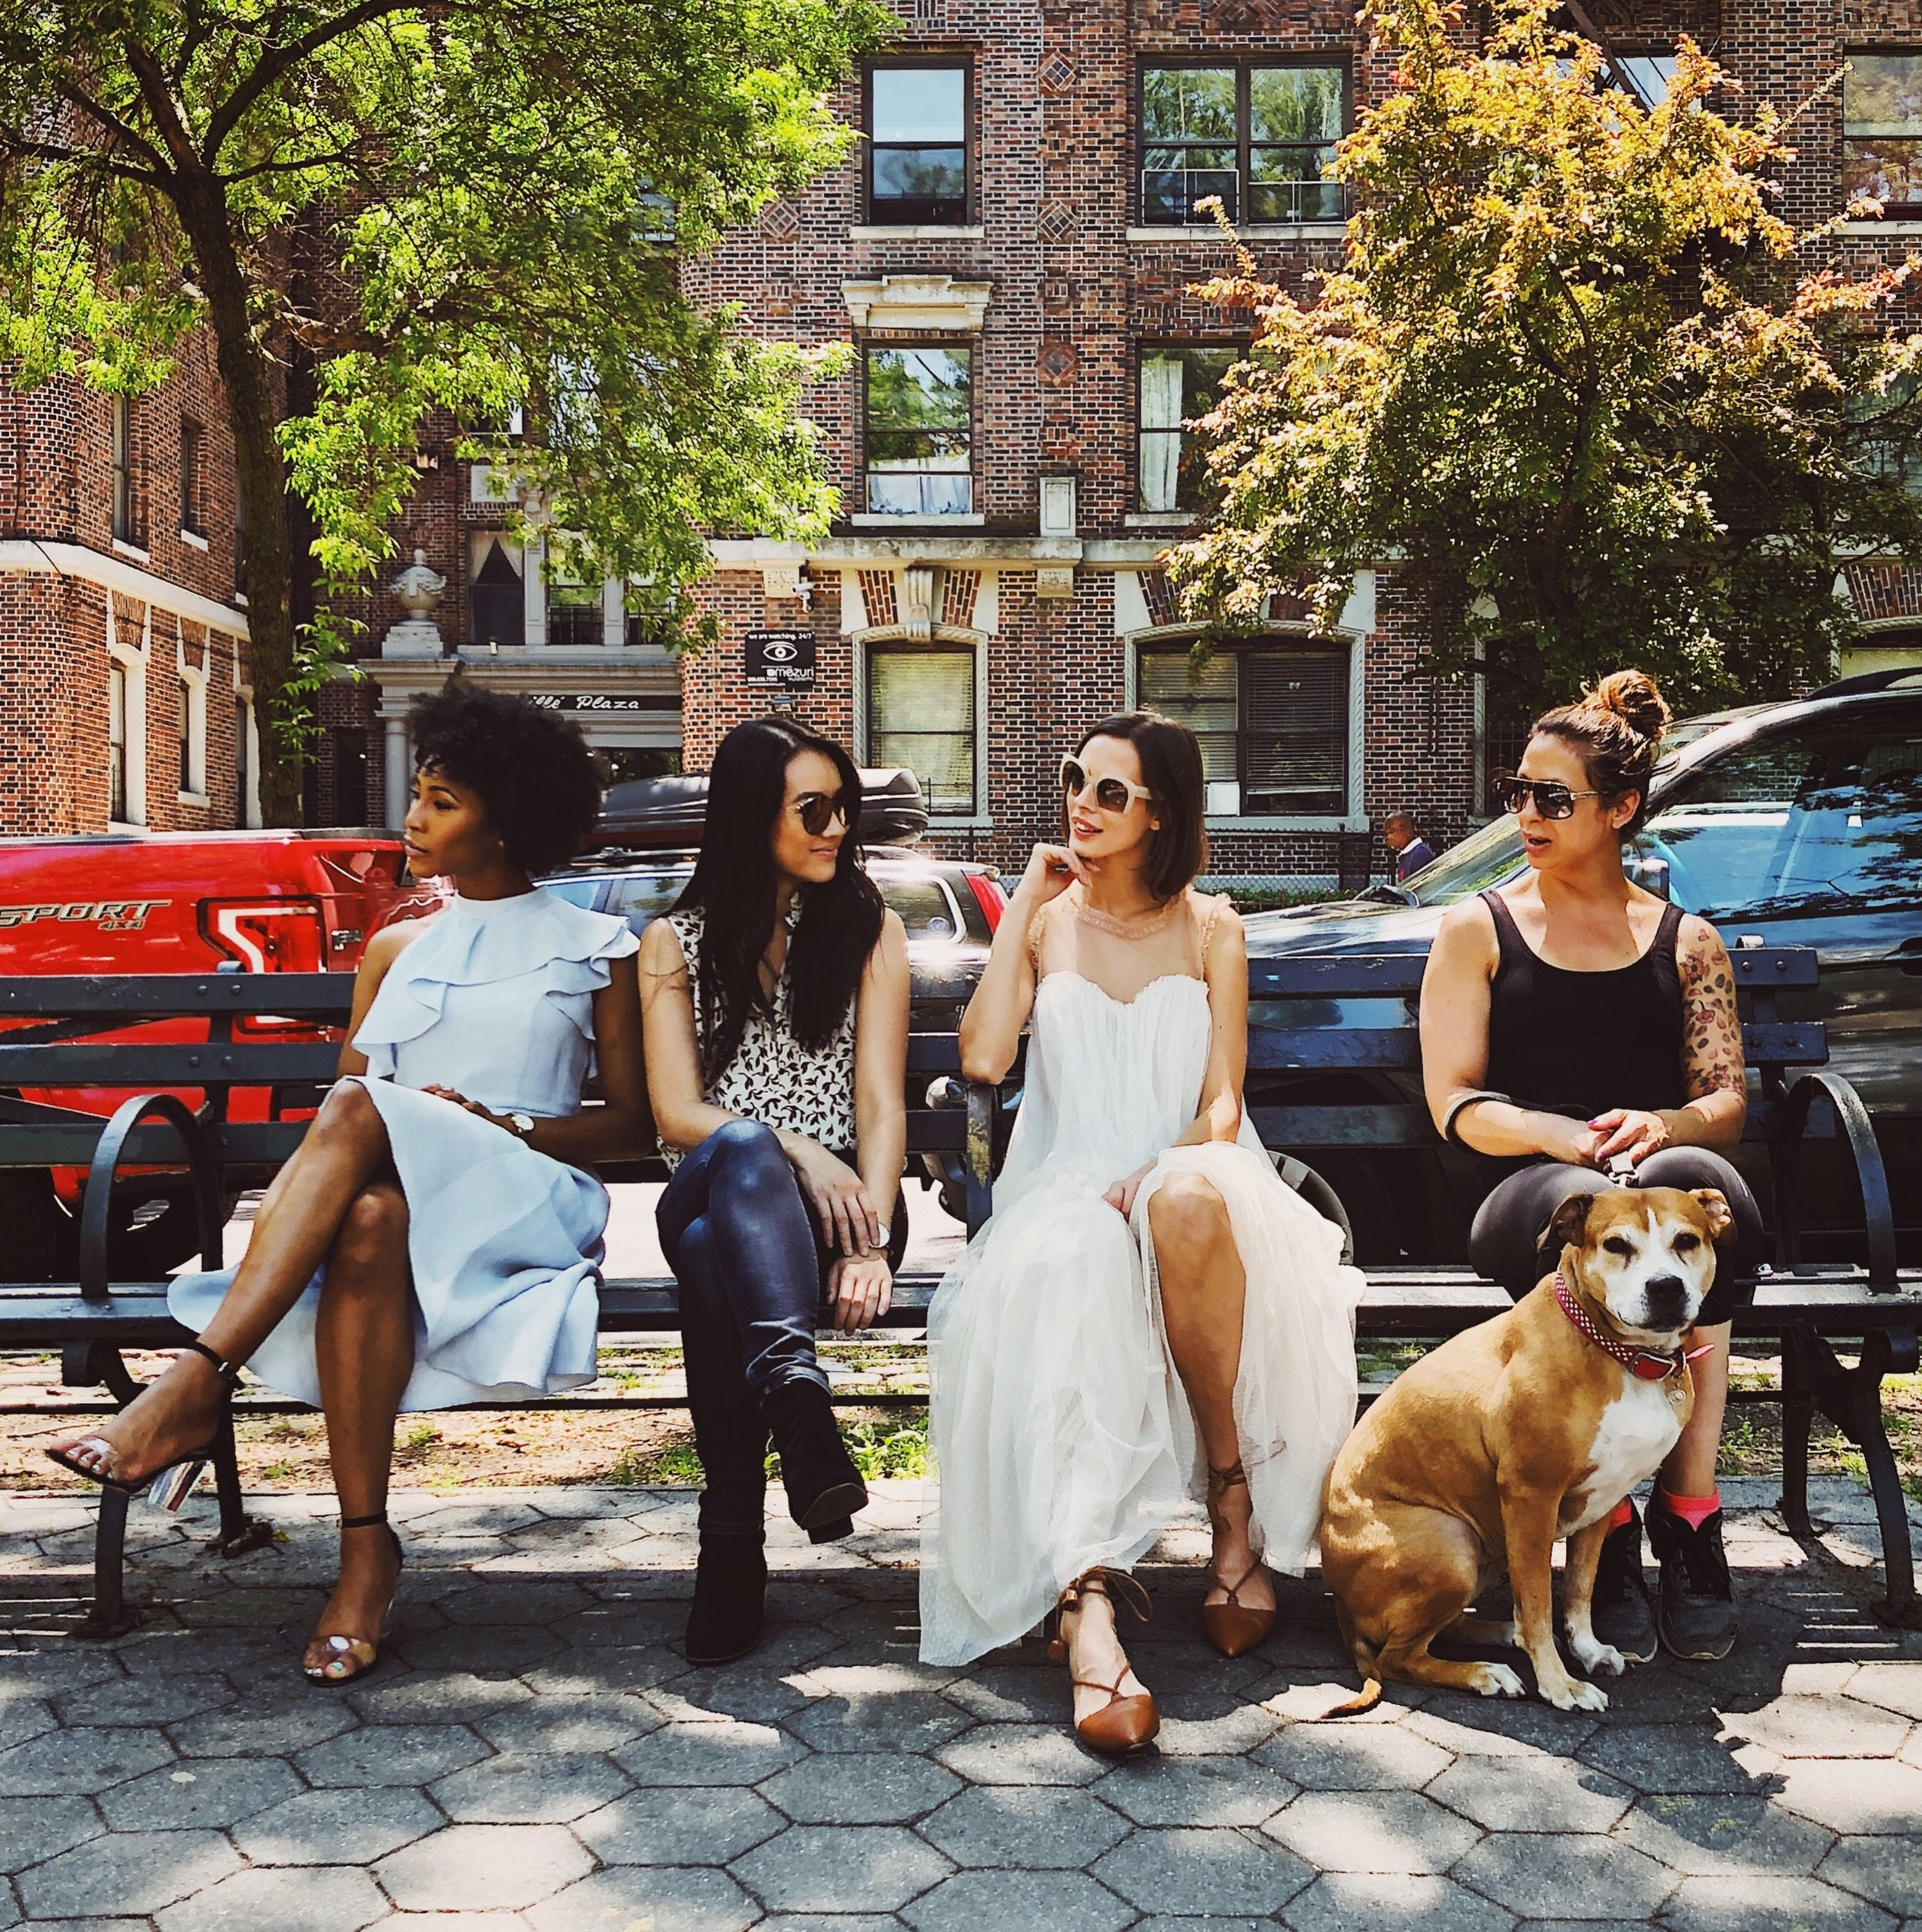 Four women on city park bench talking.